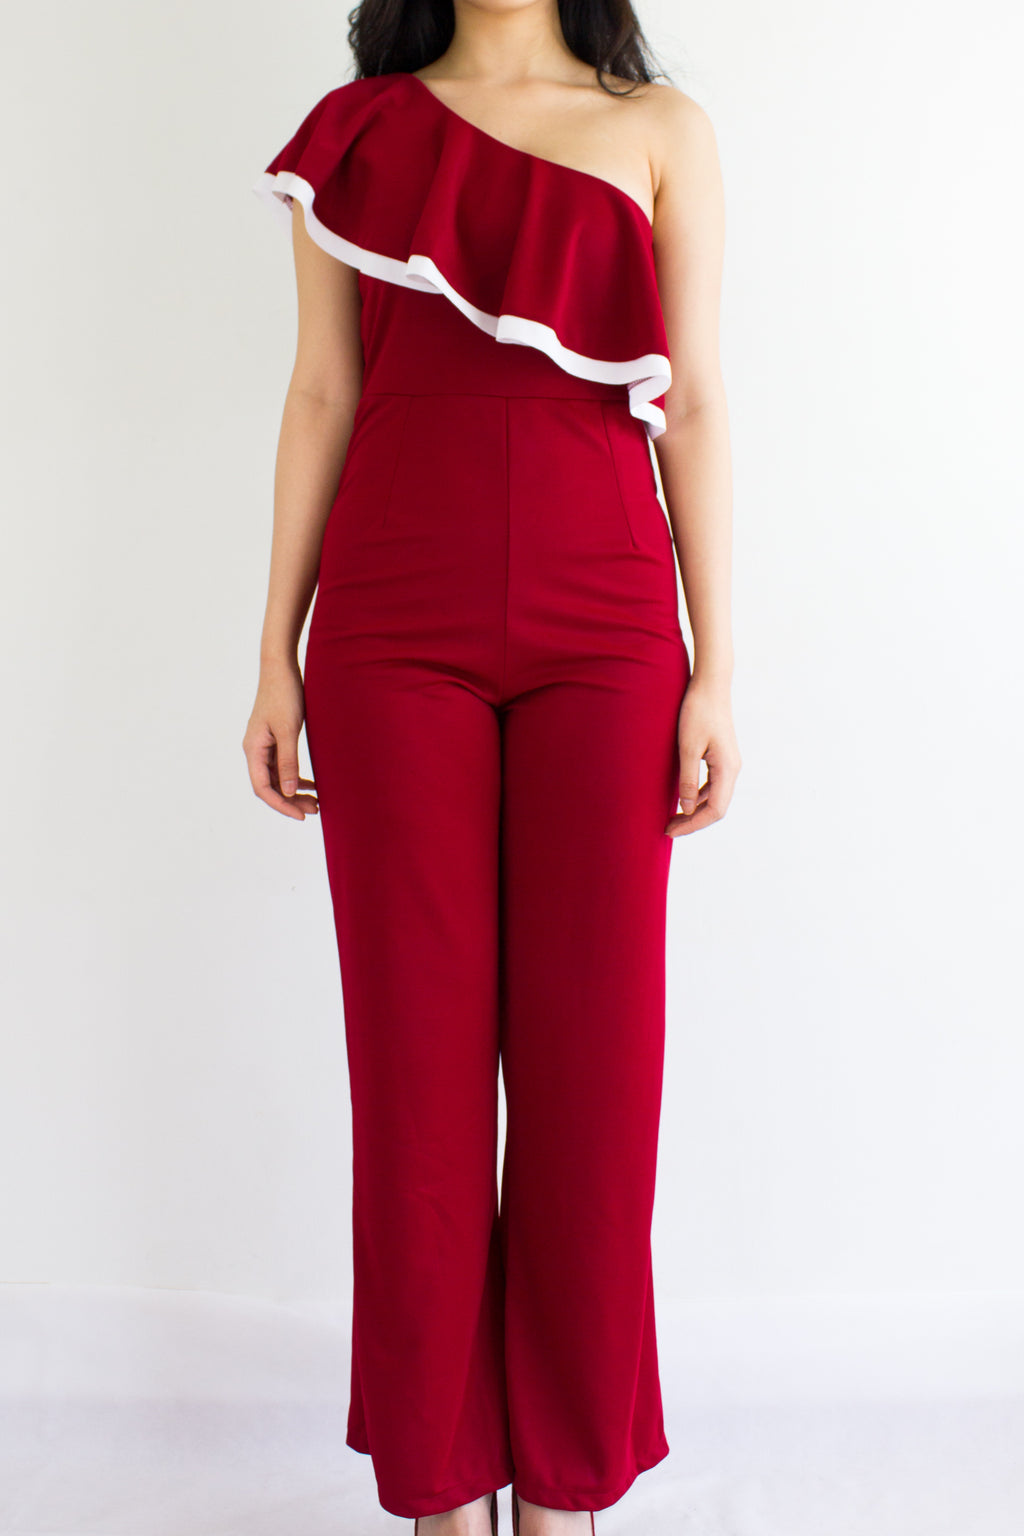 Ruffle My One Shoulder Jumpsuit in Wine Red - BOTTOMS - Peep Boutique